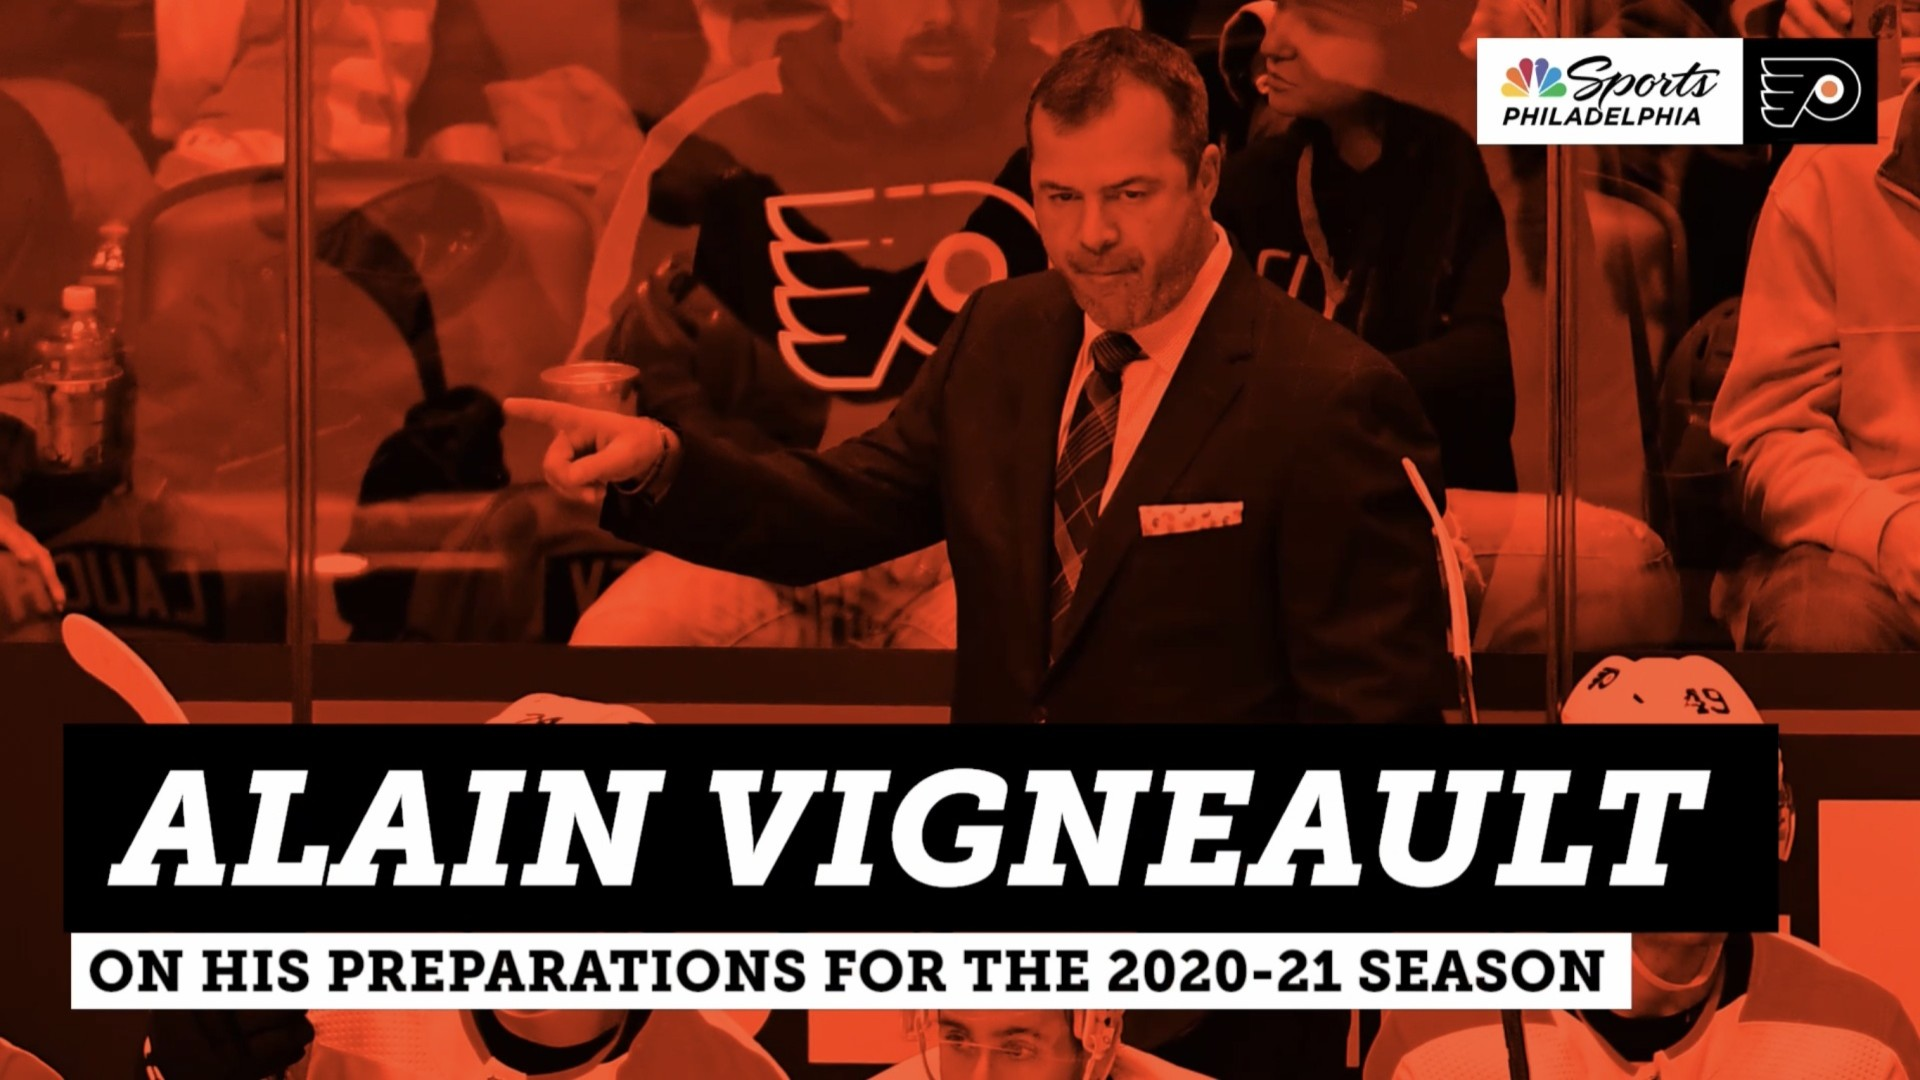 Alain Vigneault on his preparations for the 2020-21 NHL season